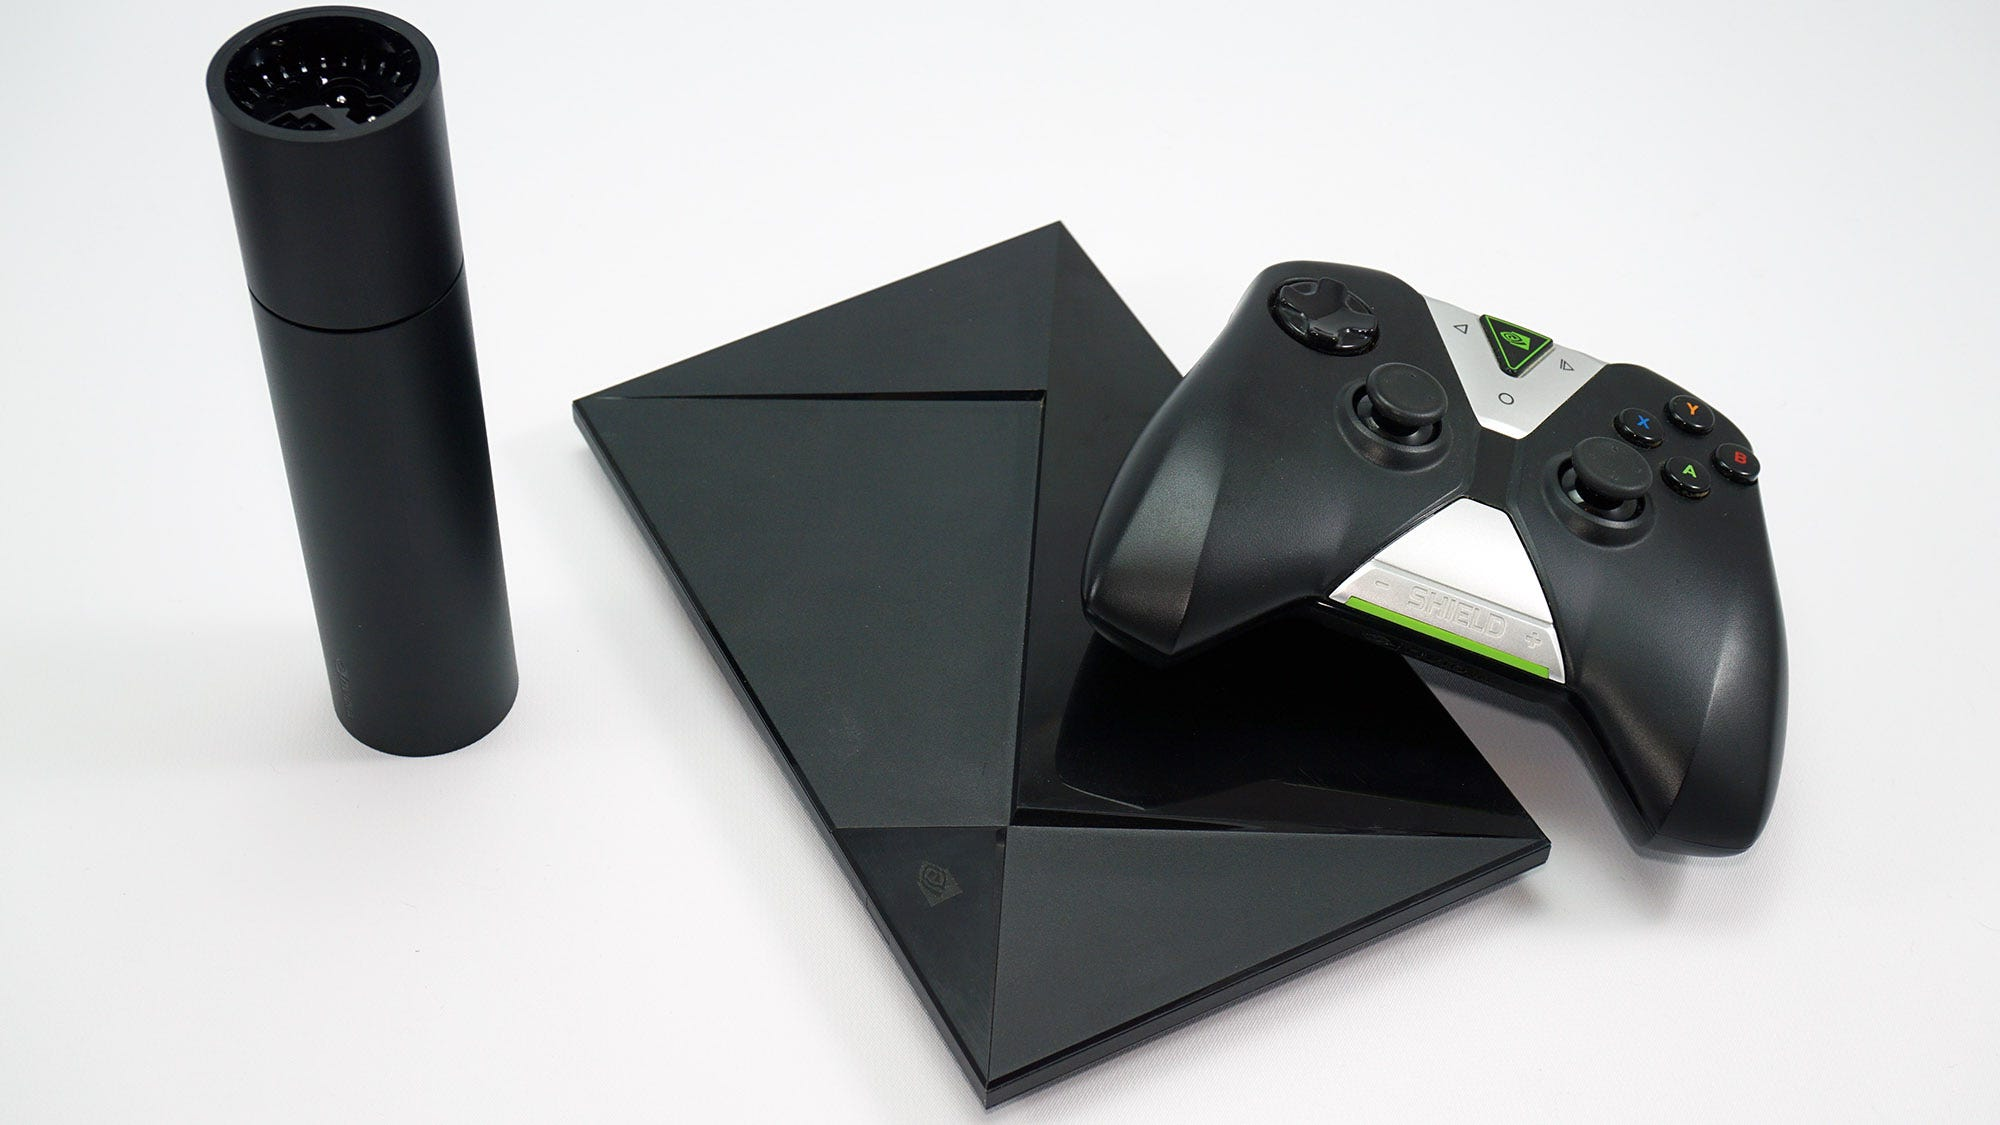 The new SHIELD with the original SHIELD and controller.